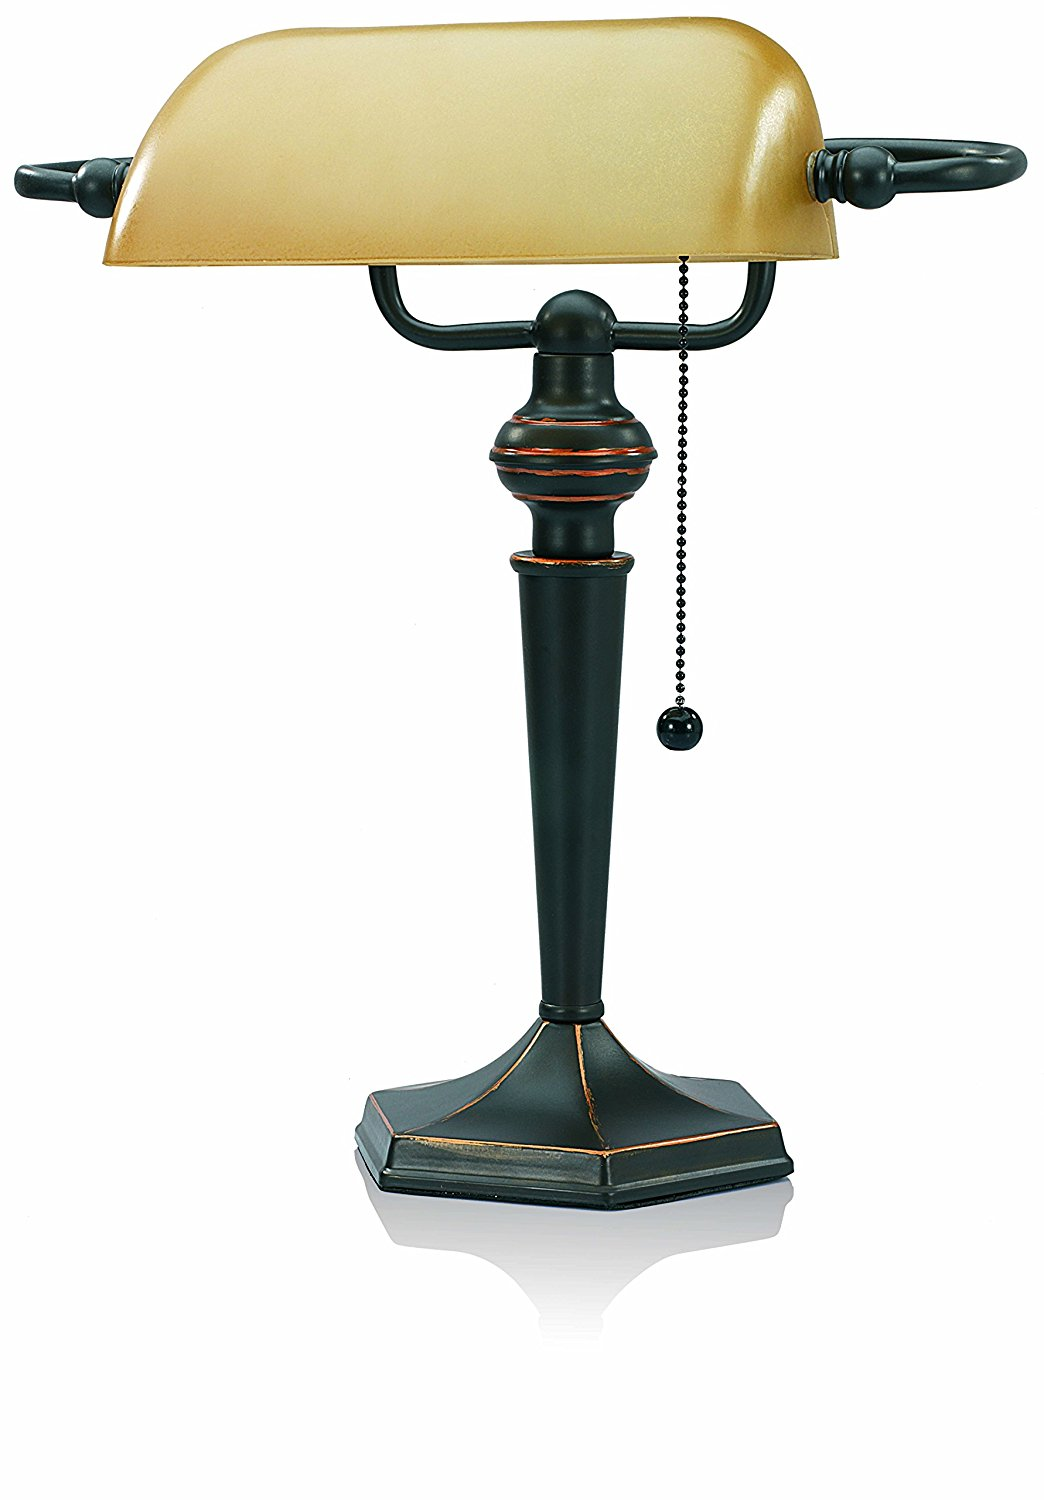 V Light Classic Desk Lamp Top 8 Best Home Depot ...